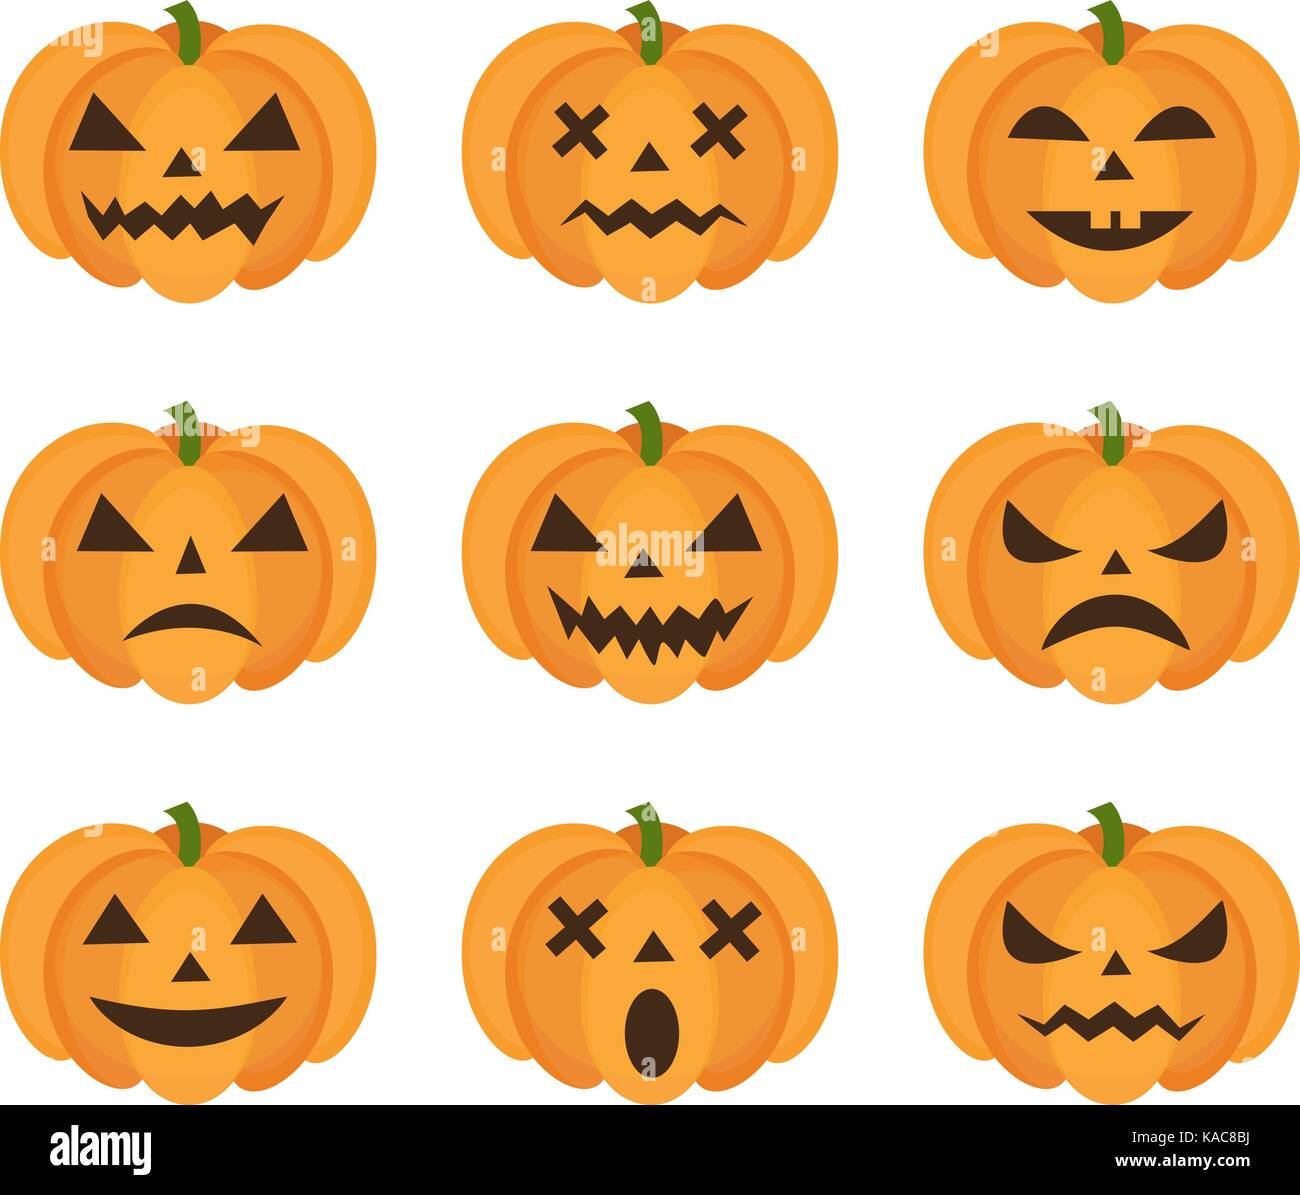 Halloween pumpkin icon set with emoji. Scary emoticons pumpkins collection. Isolated on white background. Vector - Stock Vector